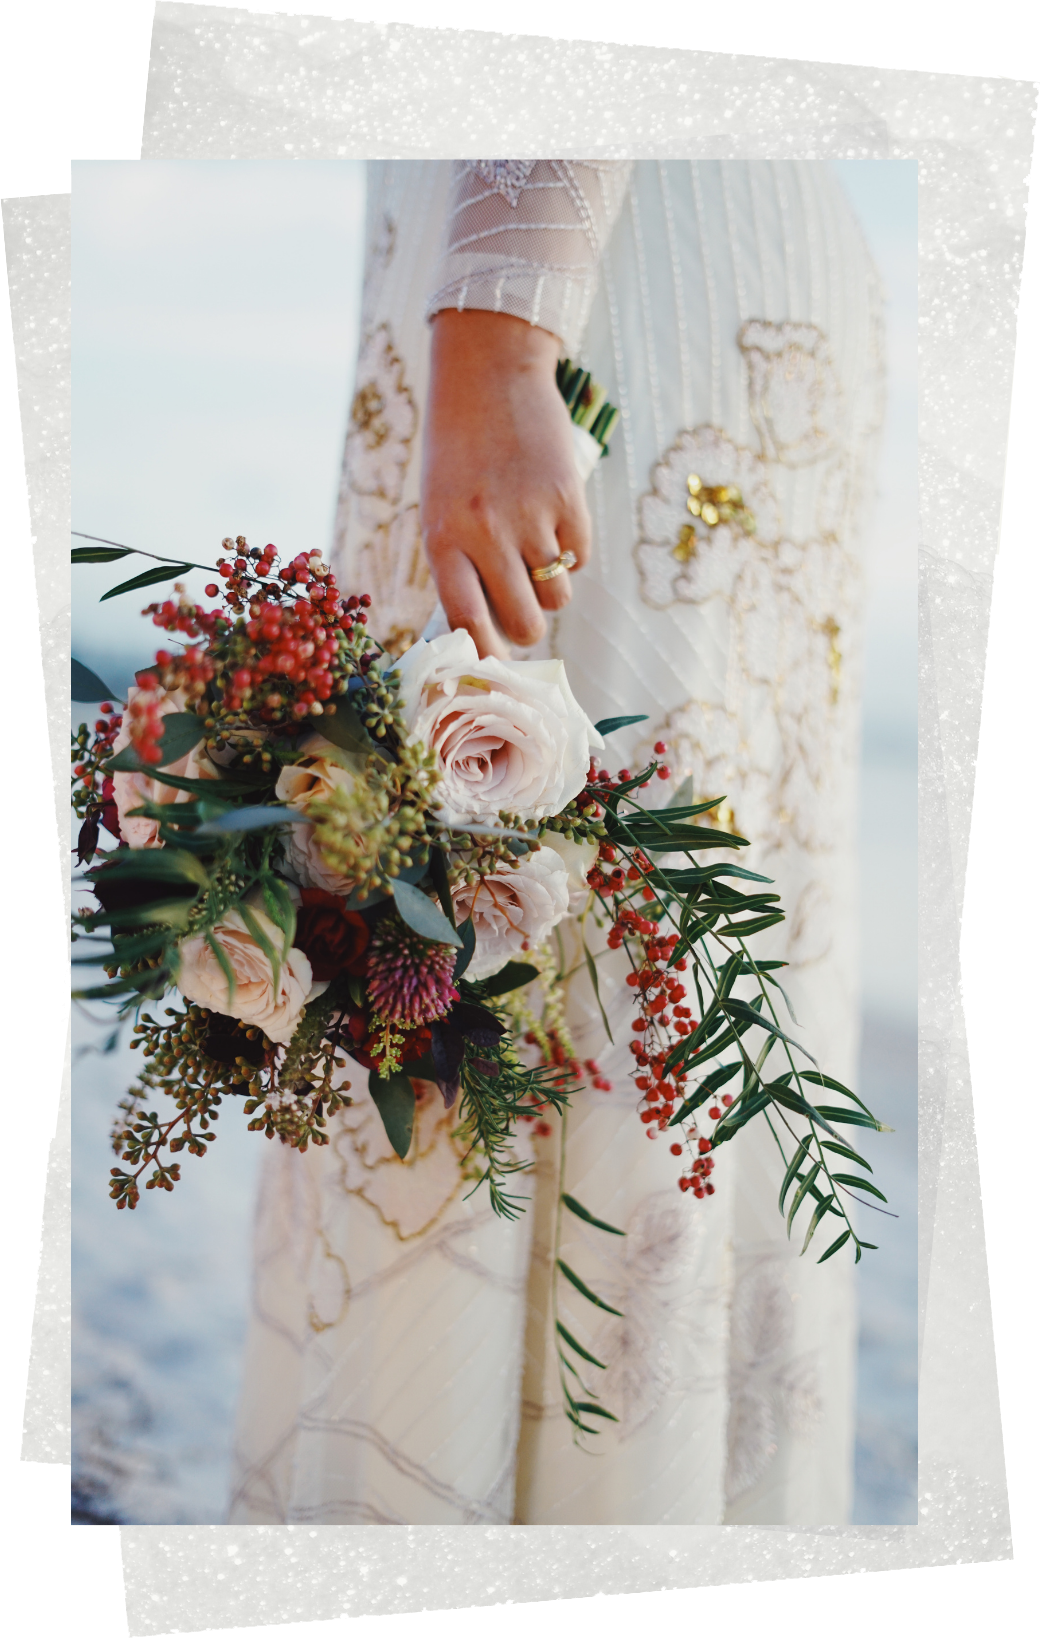 Wedding Skin Package offered by Shades Valley Dermatology